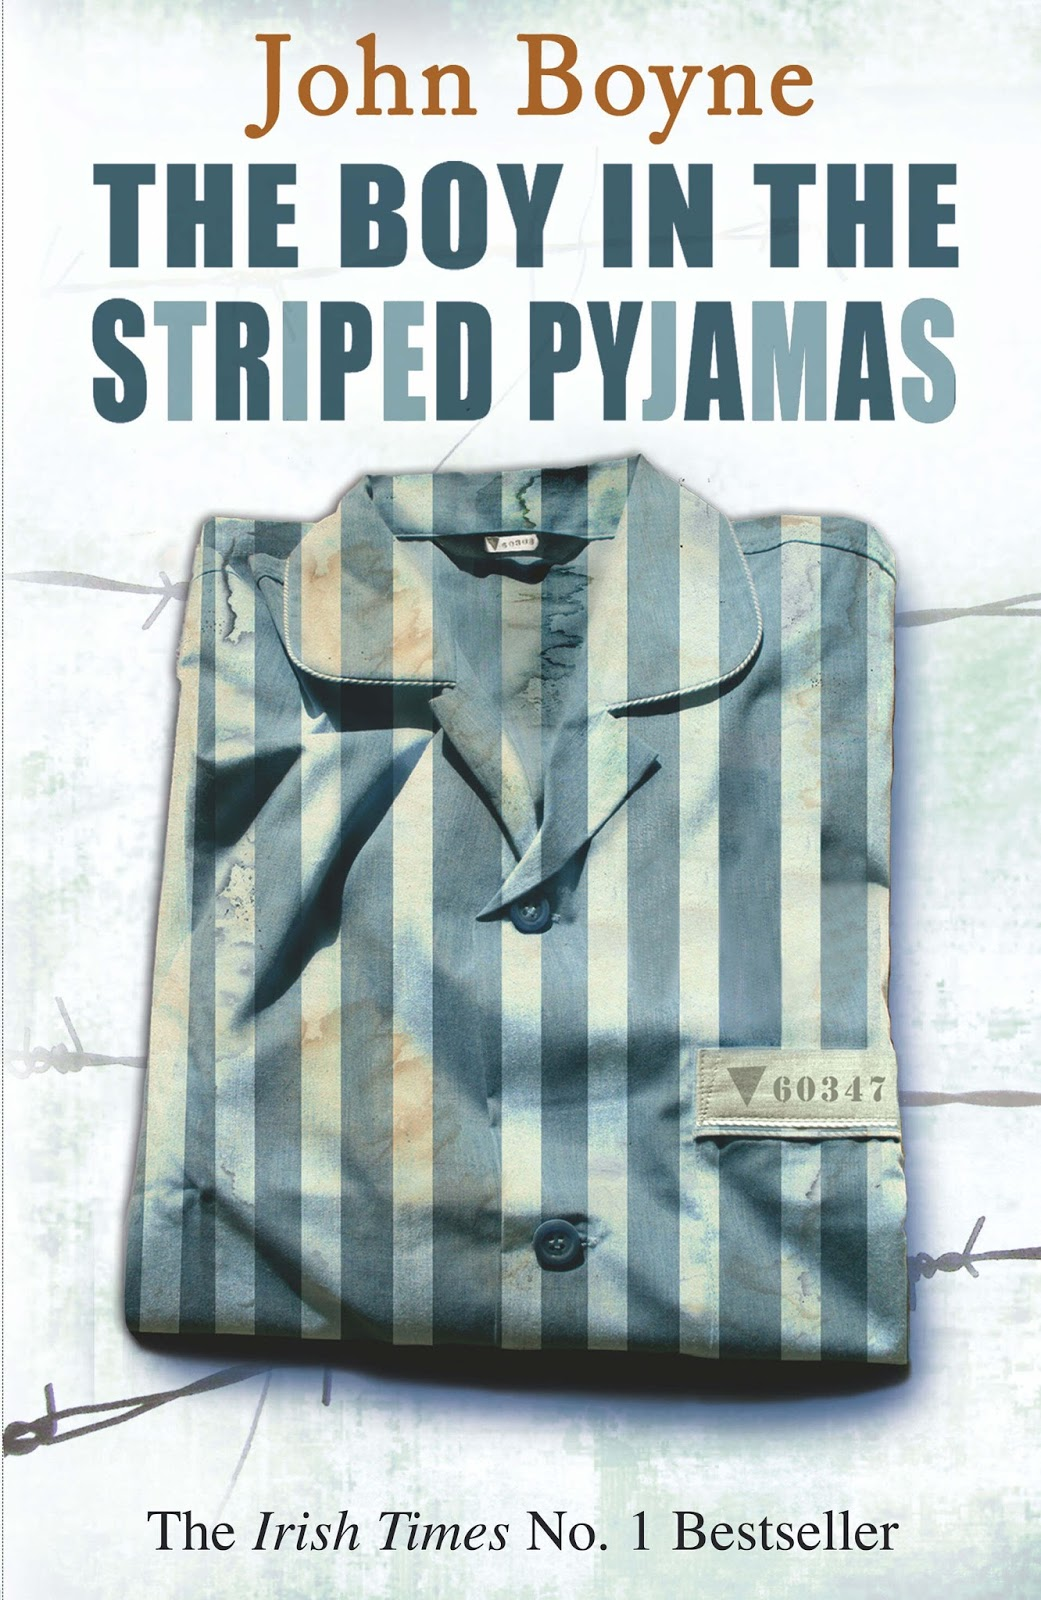 under the mountain many covers monday the boy in the striped pyjamas more stripes this time but for some reason the placement i keep expecting it to be a book of baby s